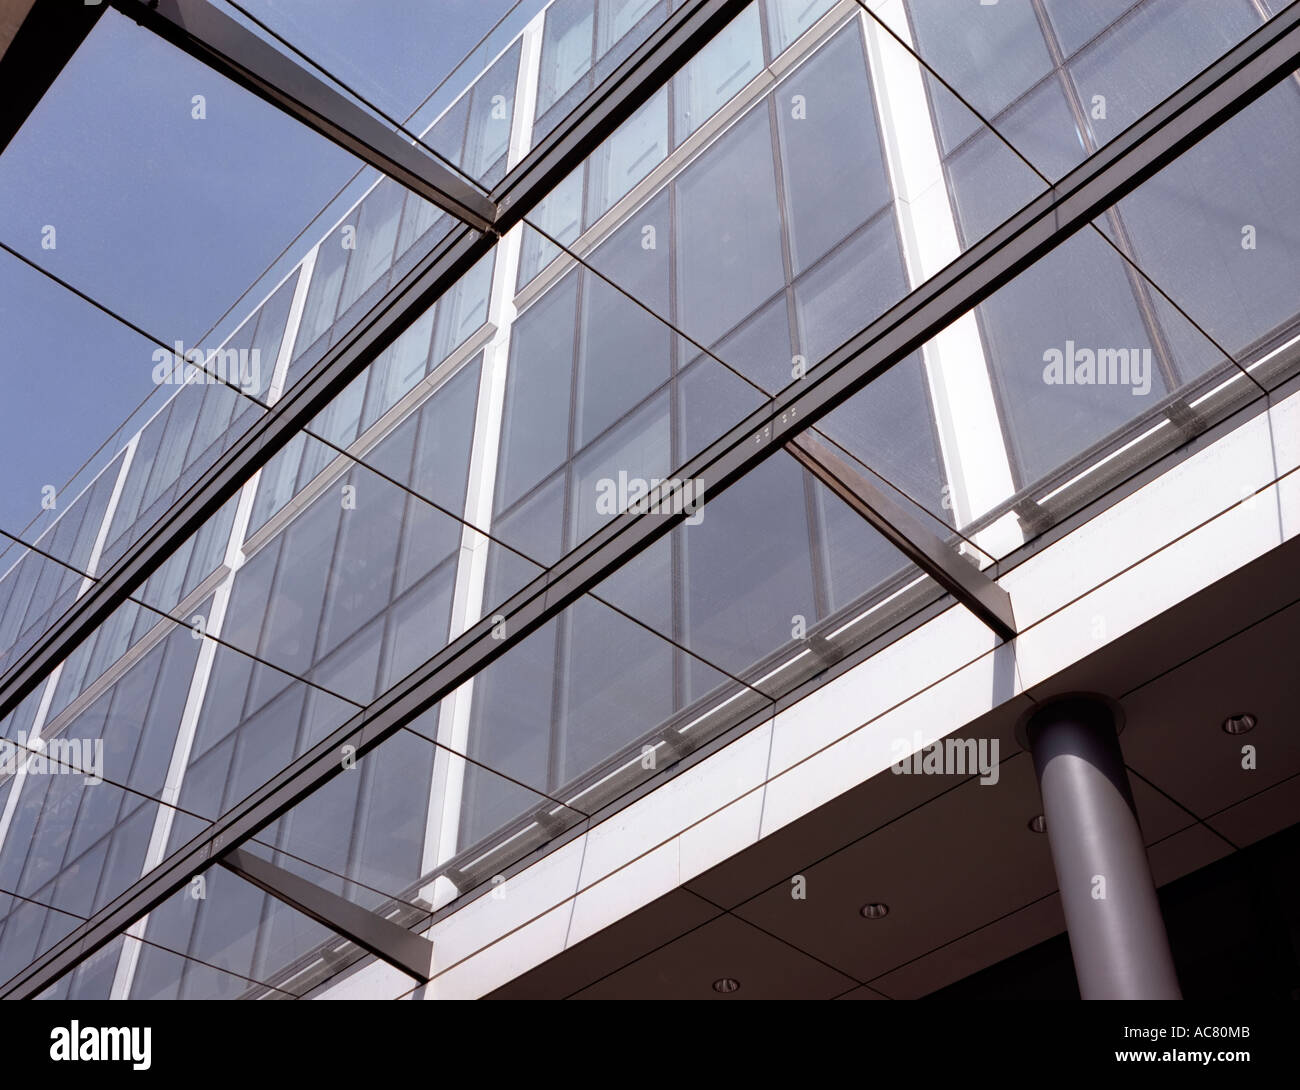 Detail Of Glass Ceiling Covering Walkway By The Side Of